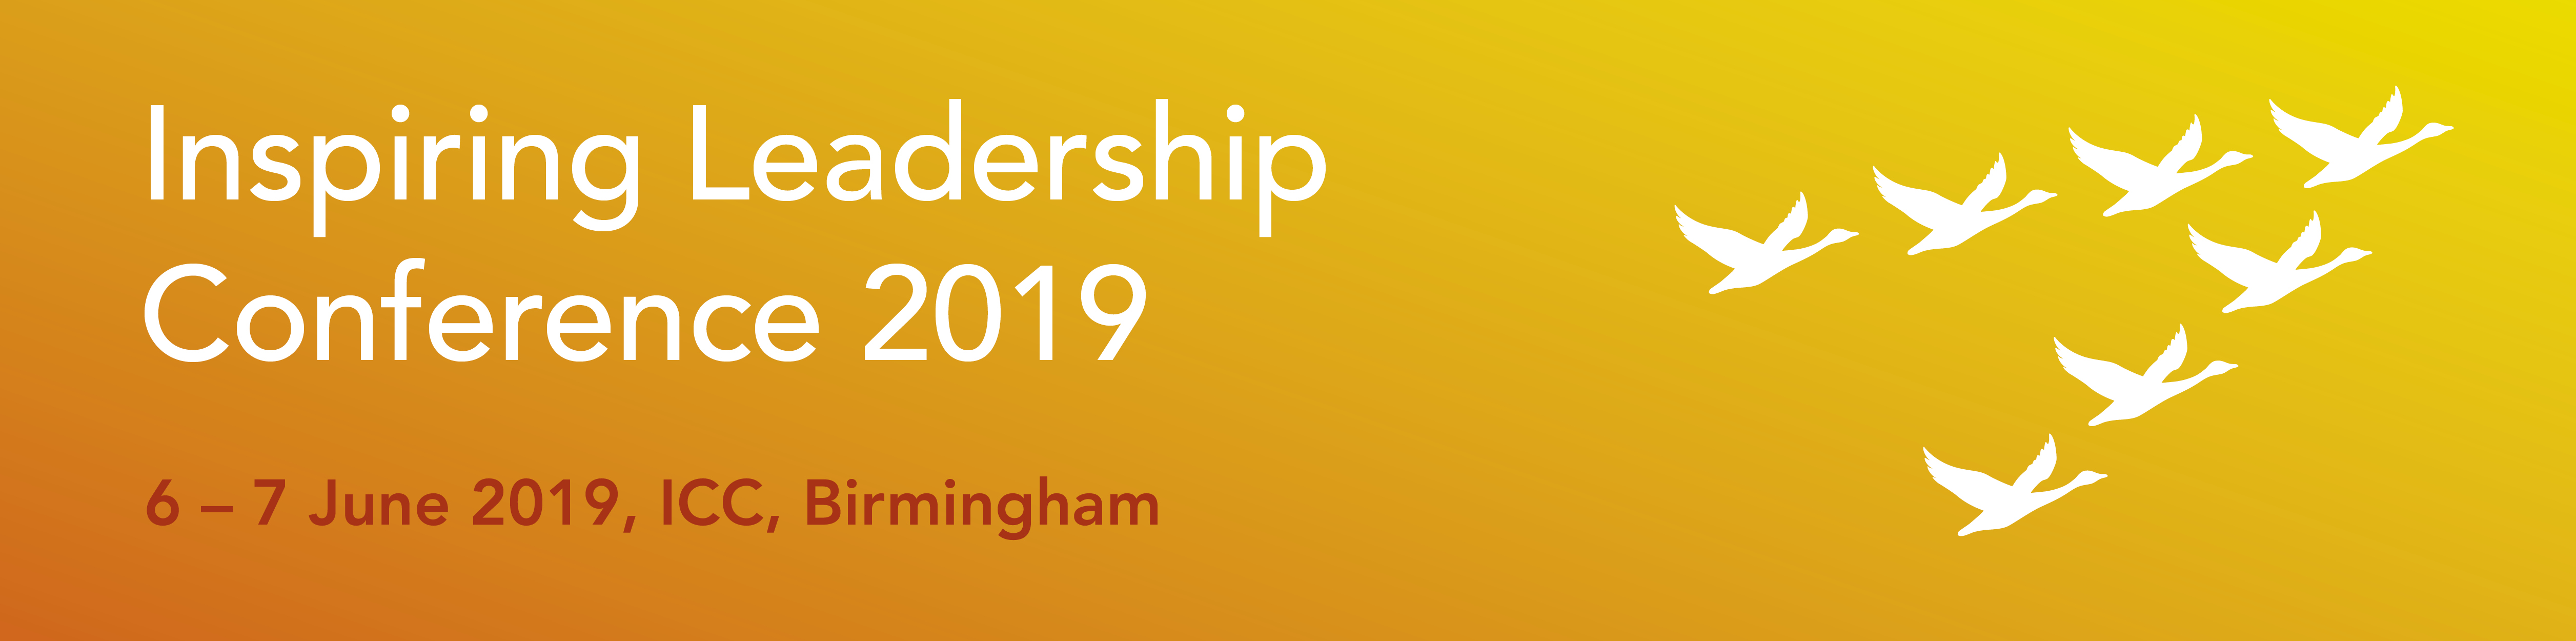 Inspiring Leadership Conference 2019